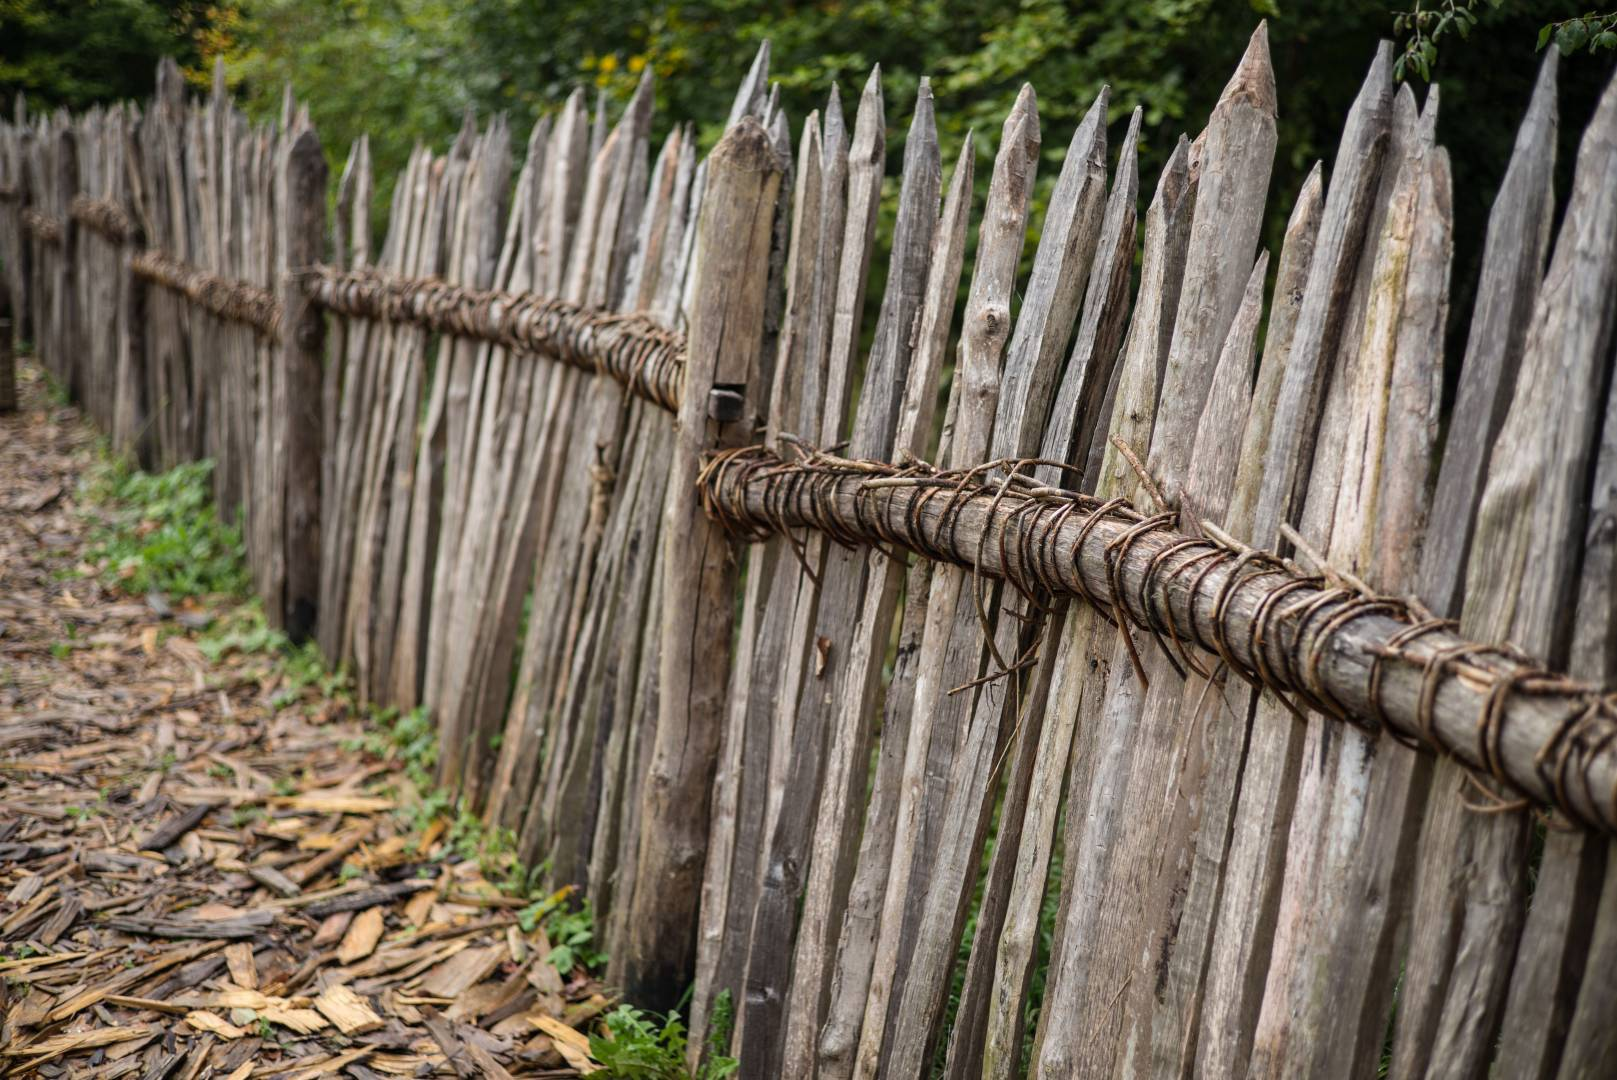 """Like 1000 years ago: Fence on the experimental archaeology project site """"Campus Galli"""". Summarit-M 50/2.4 1/350 sec, f/2.4, ISO 200 - Leica M Typ 262 (Image ©Jörg-Peter Rau)"""